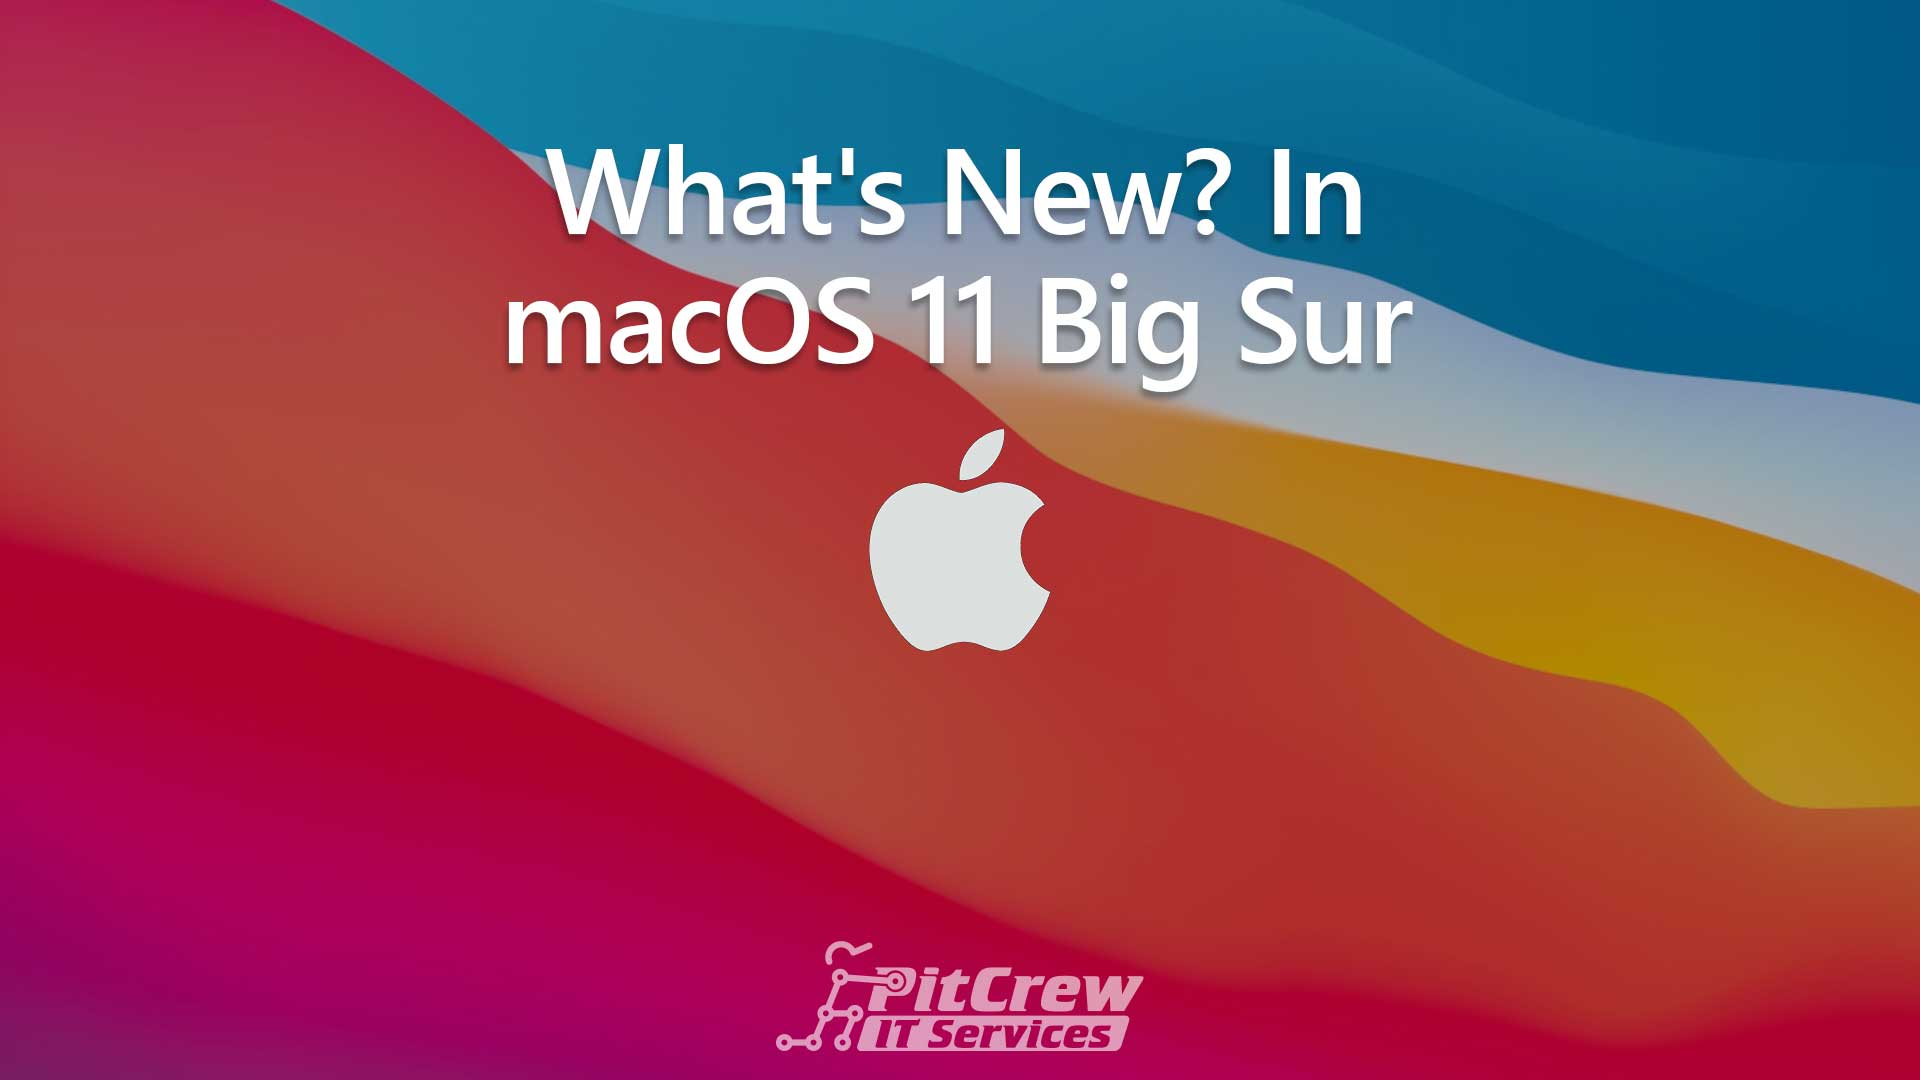 What's New? In macOS 11 Big Sur